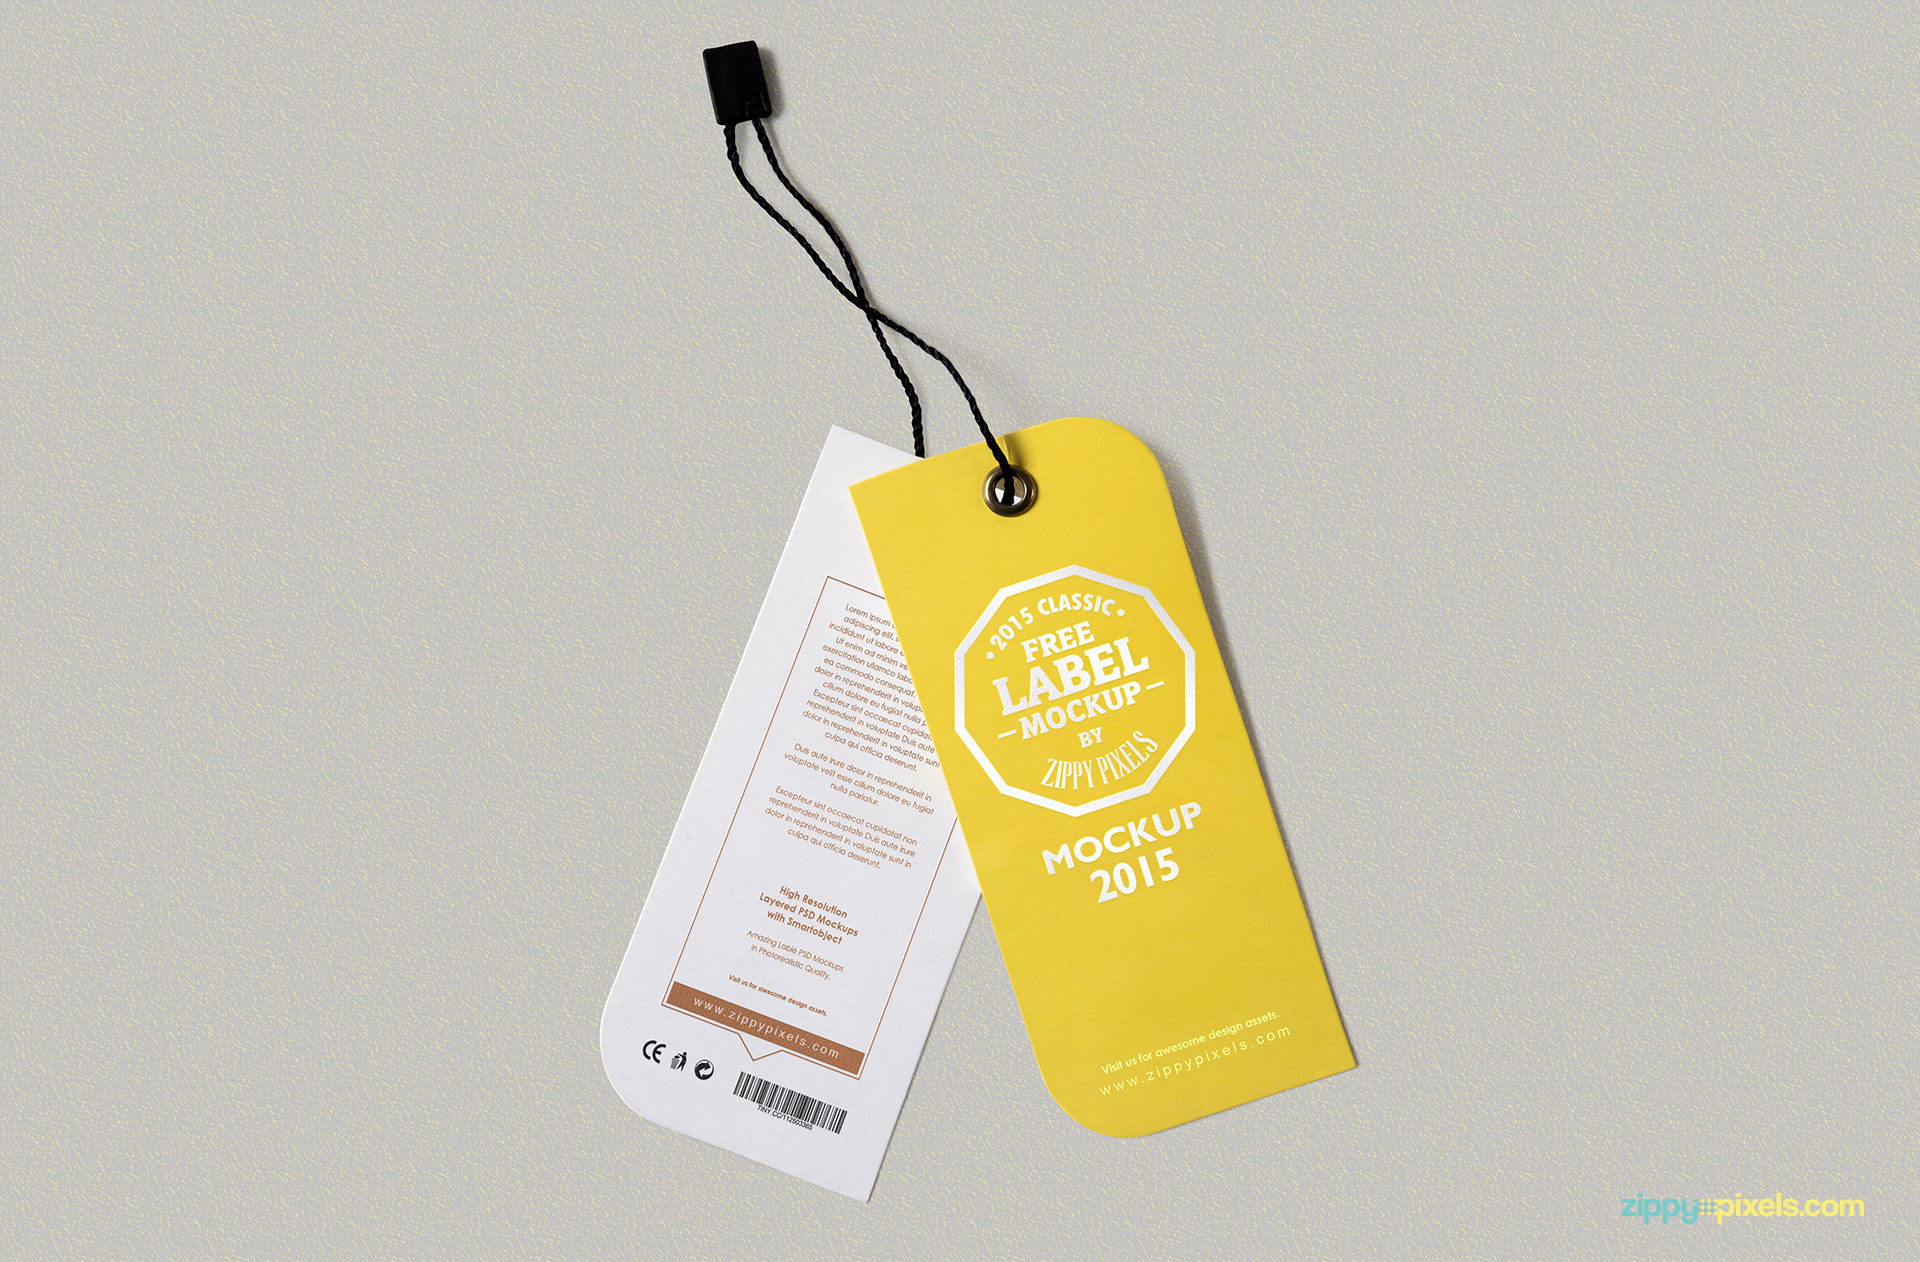 You can edit the front and back design of the tag